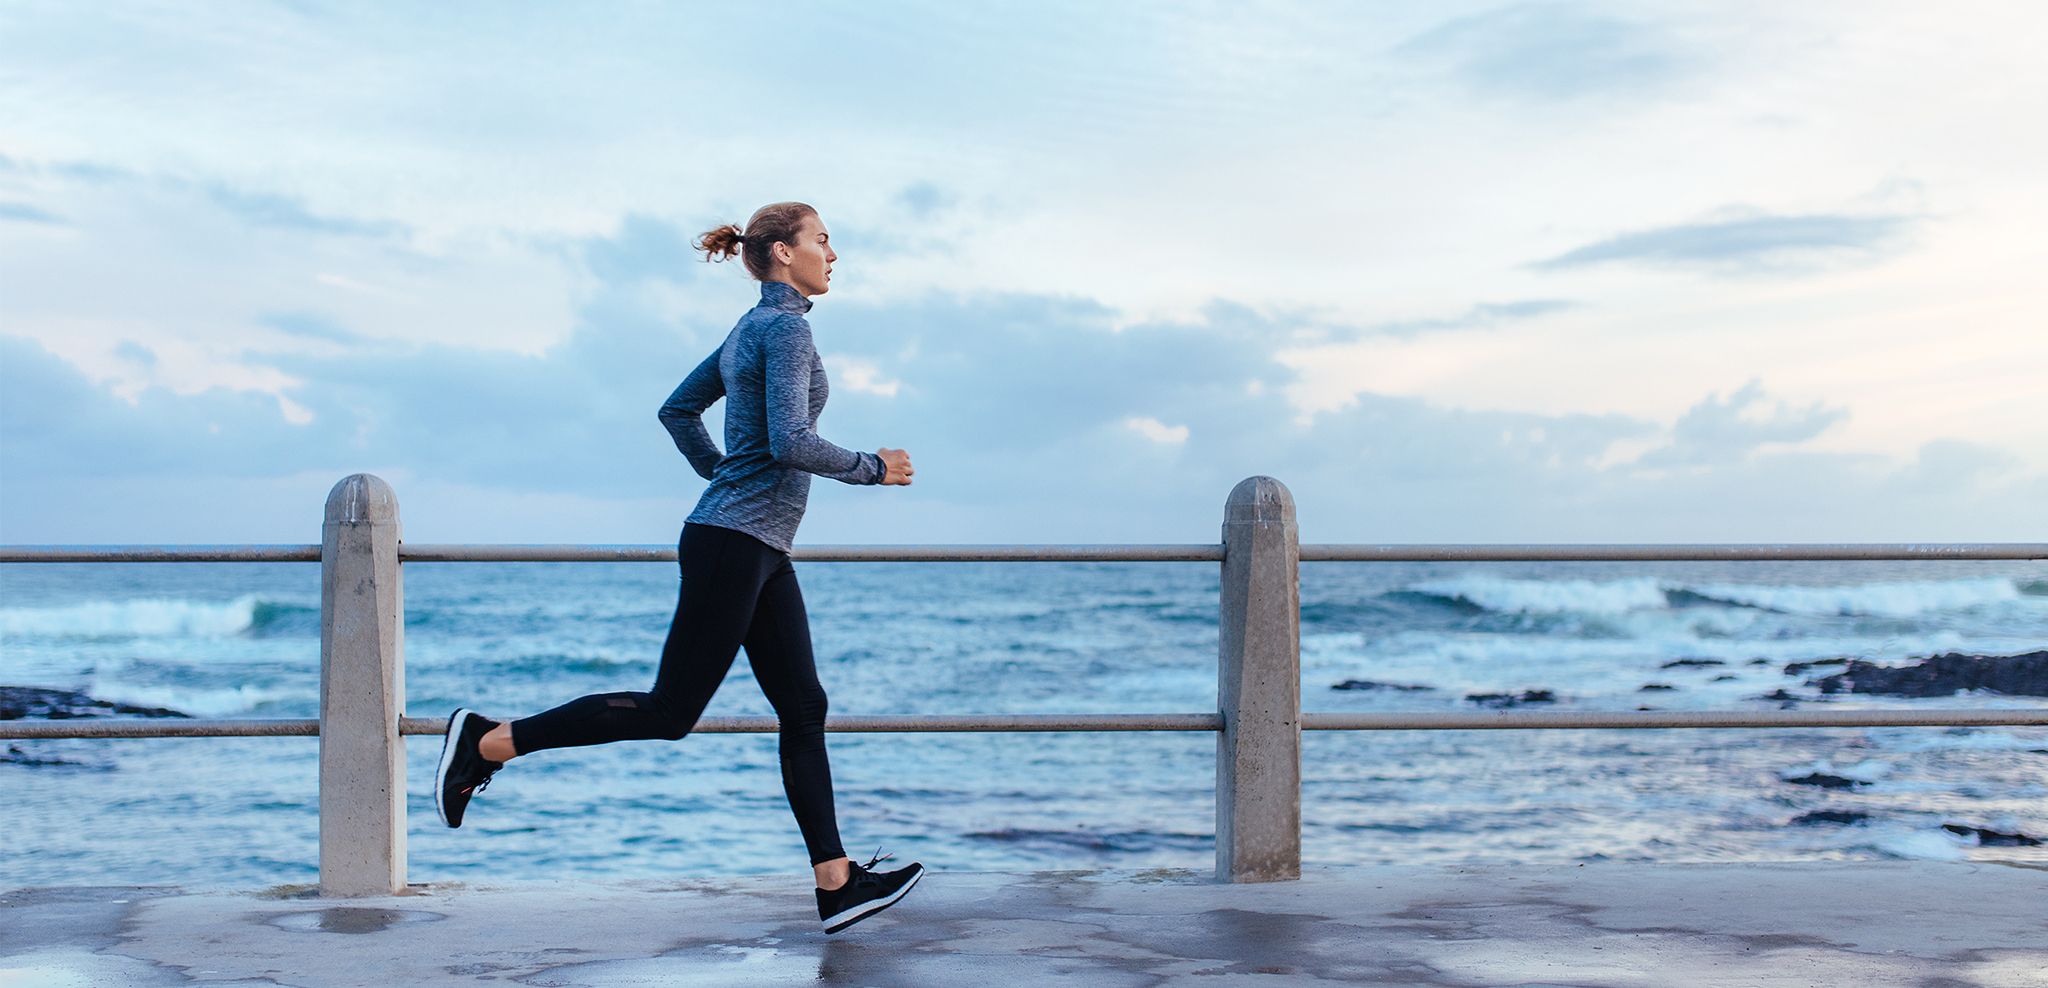 Treadmill or Outdoors? A Handy Guide for Runners